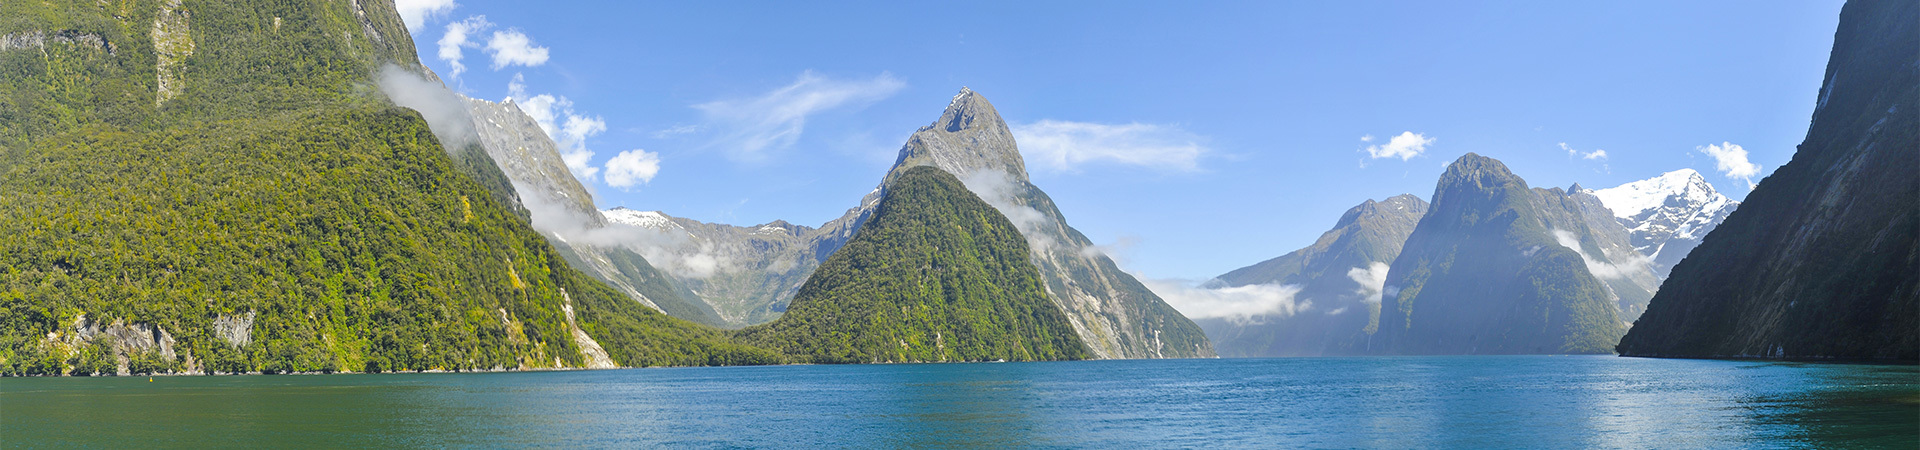 View of Mitre peak in Milford Sound, South Island New Zealand